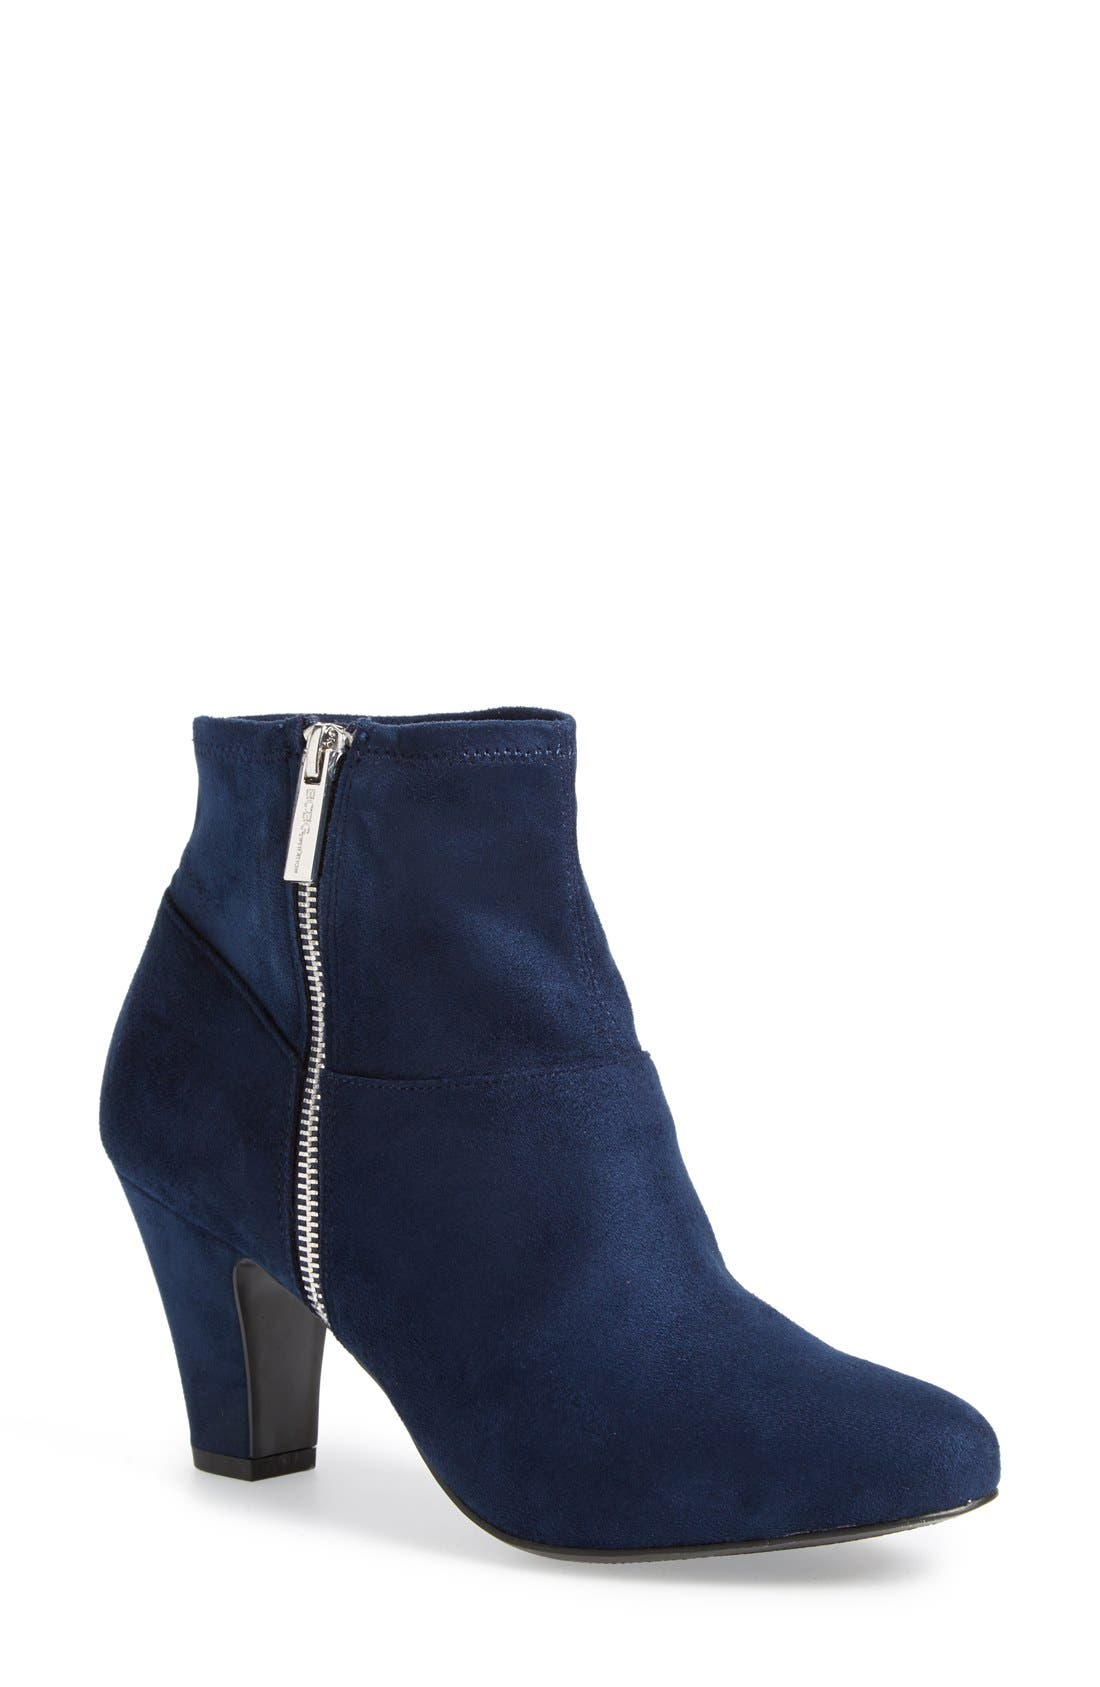 Alternate Image 1 Selected - BCBGeneration 'Datto' Bootie (Women)